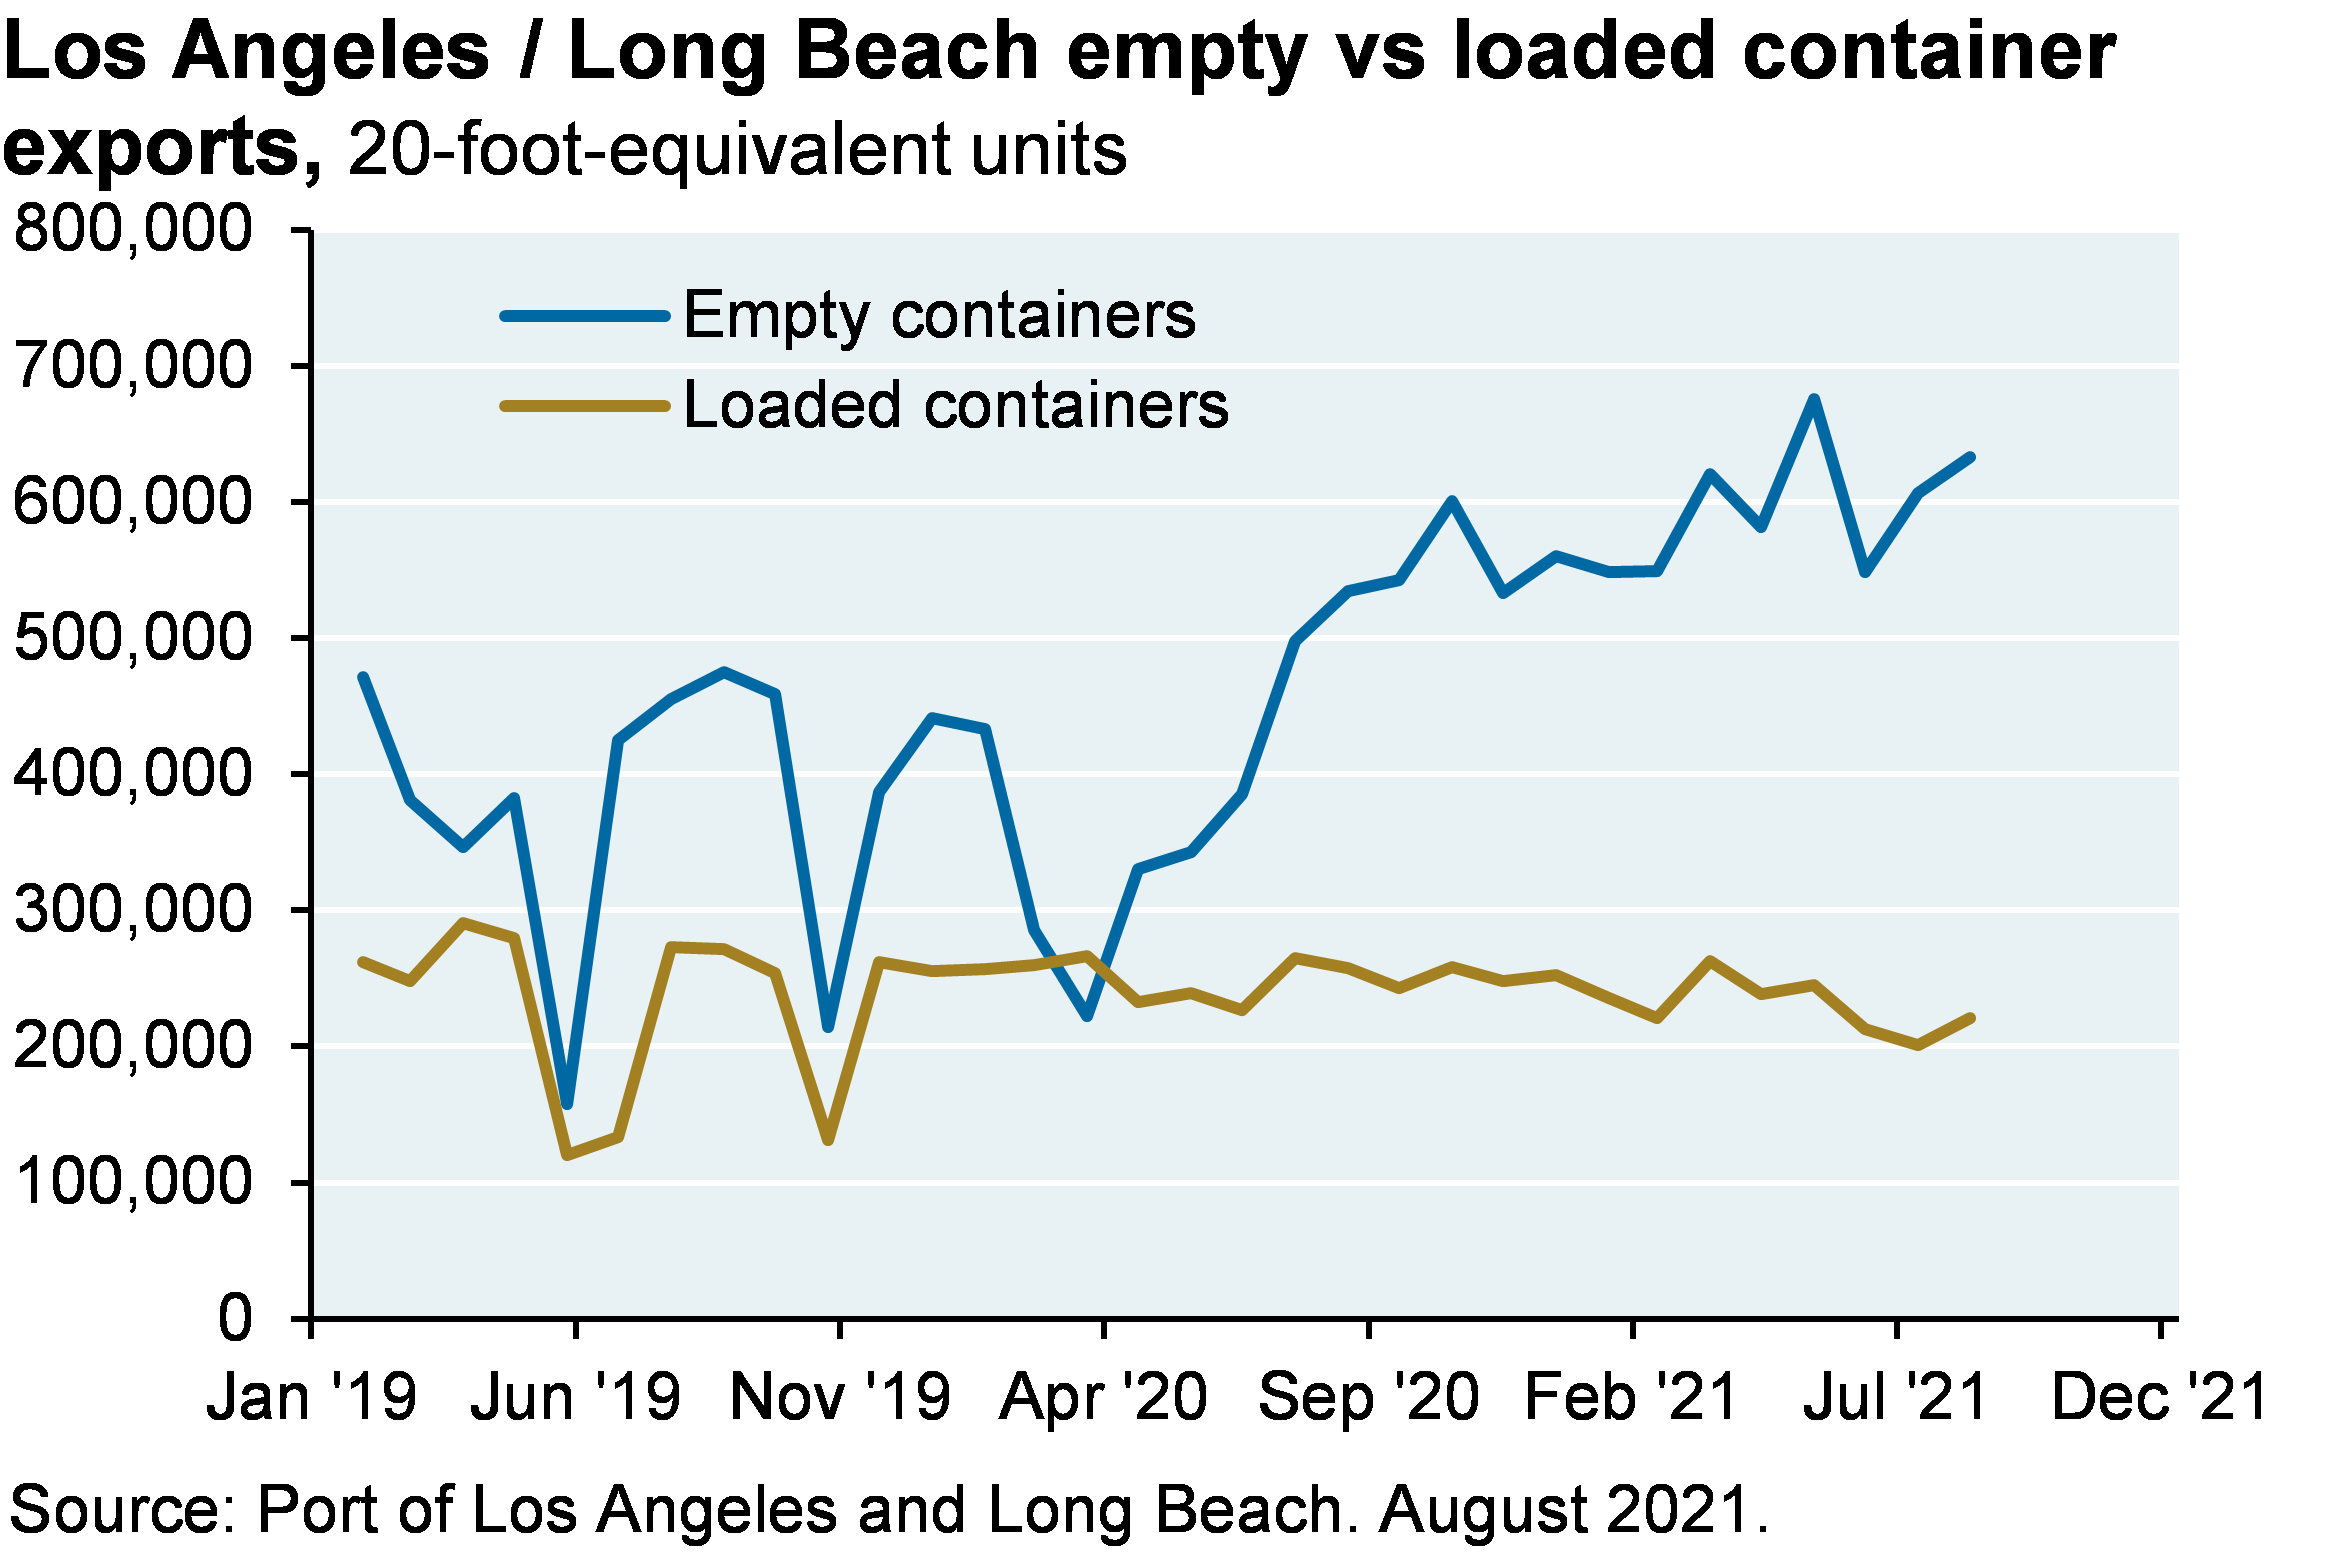 Line chart shows Los Angeles / Long Beach empty vs loaded container exports, shown as 20-foot-equivalent units. Loaded container exports has stayed relatively constant at around 200,000 20-foot-equivalent units, while empty containers has spiked to around 600,000 20-foot equivalent units.